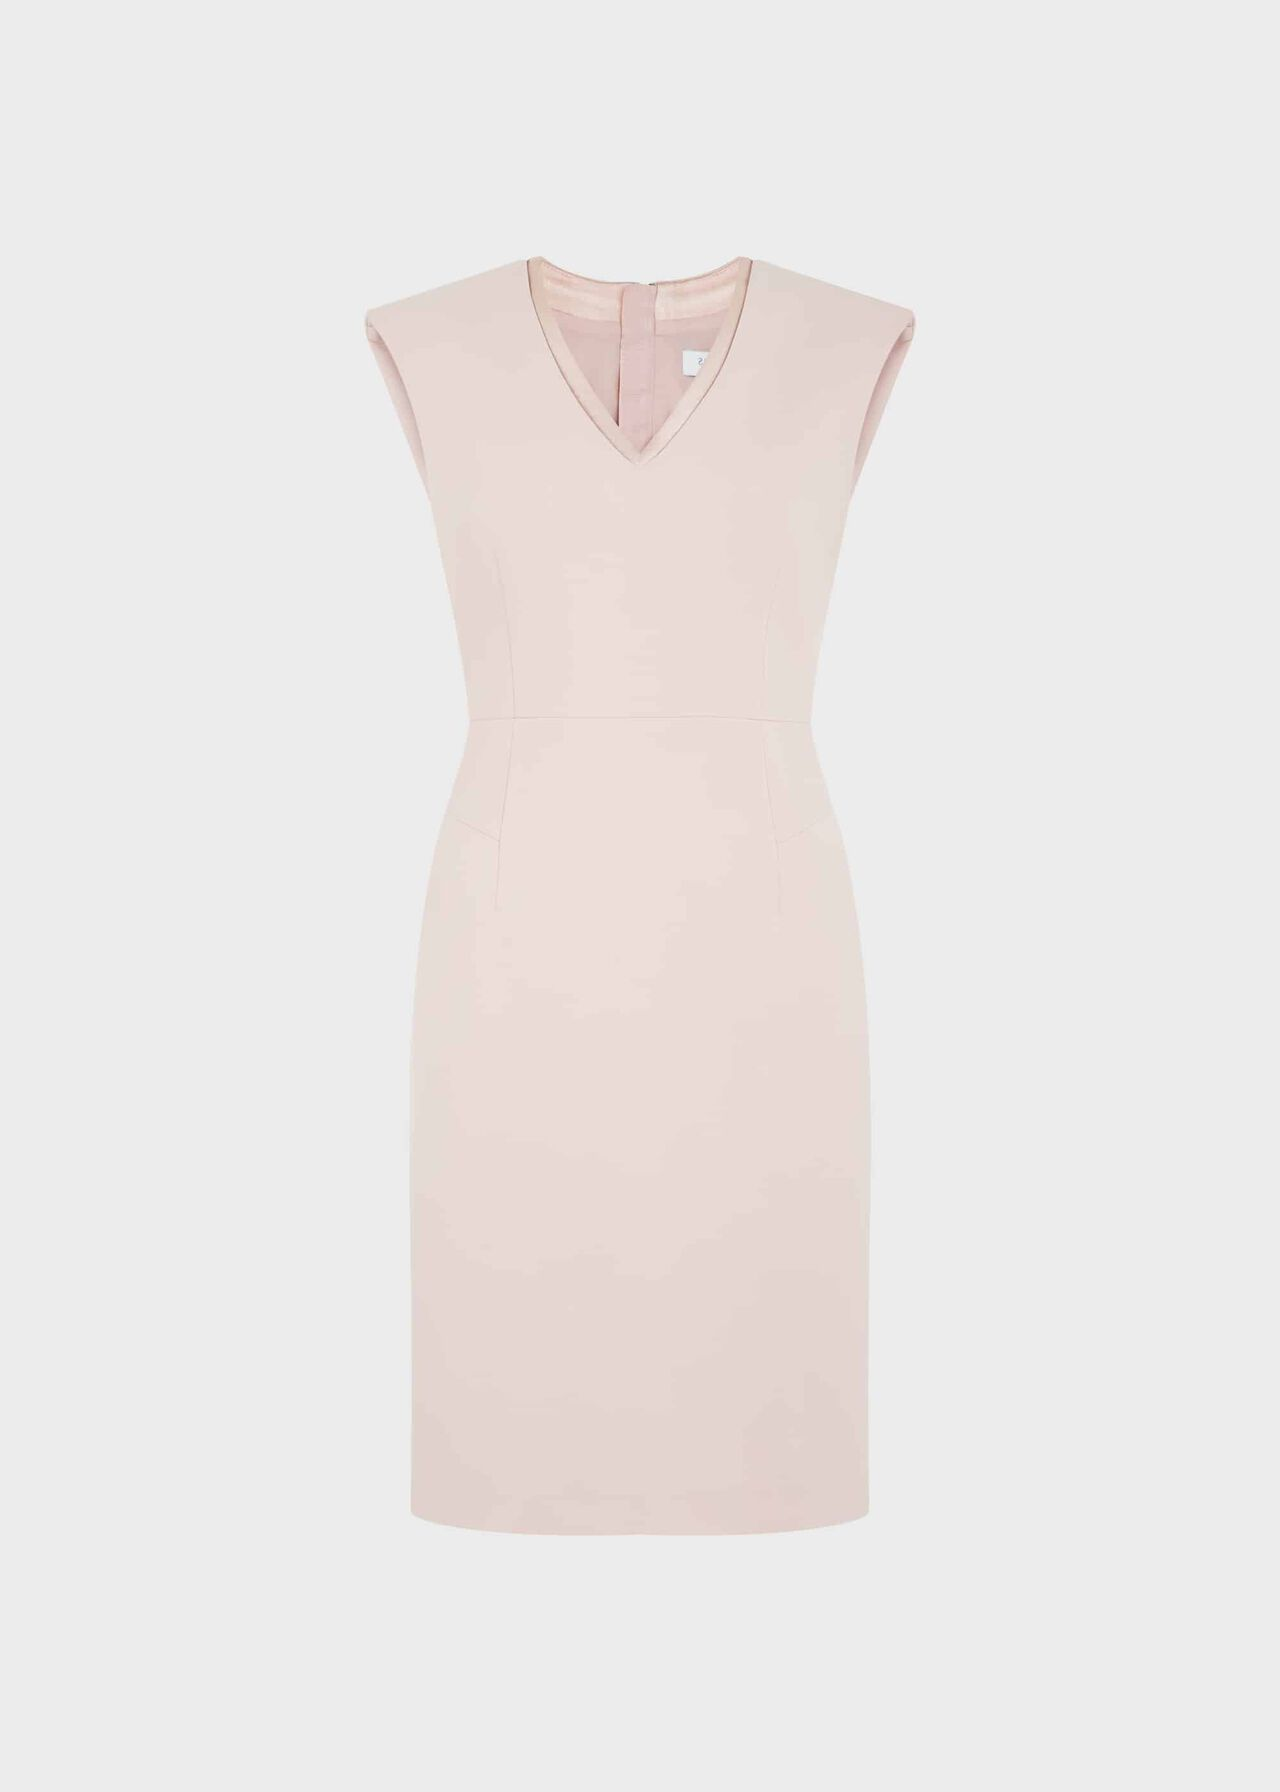 Frida Dress Pale Pink